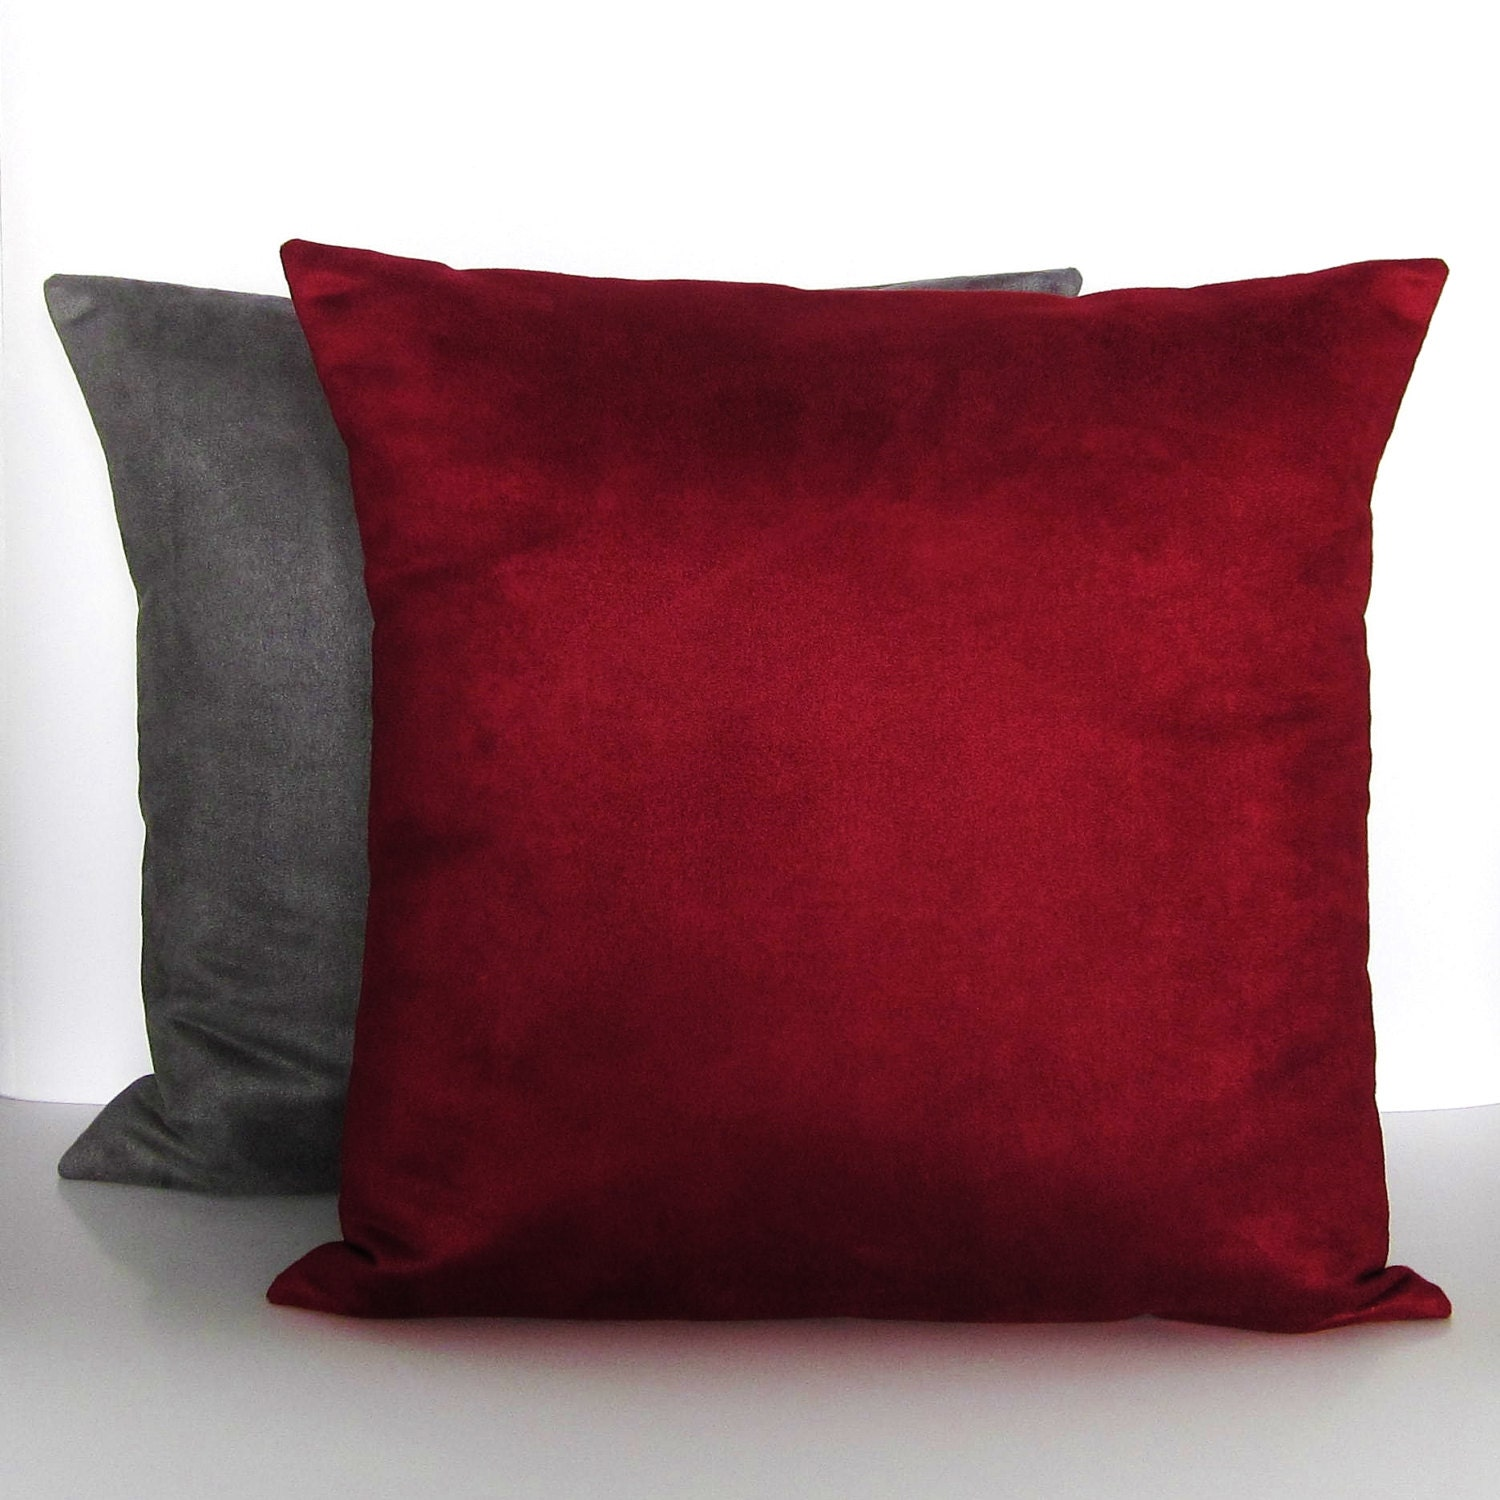 Burgundy Microfiber Throw Pillows : Burgundy Gray Suede Pillow Covers Decorative Accent Toss Throw